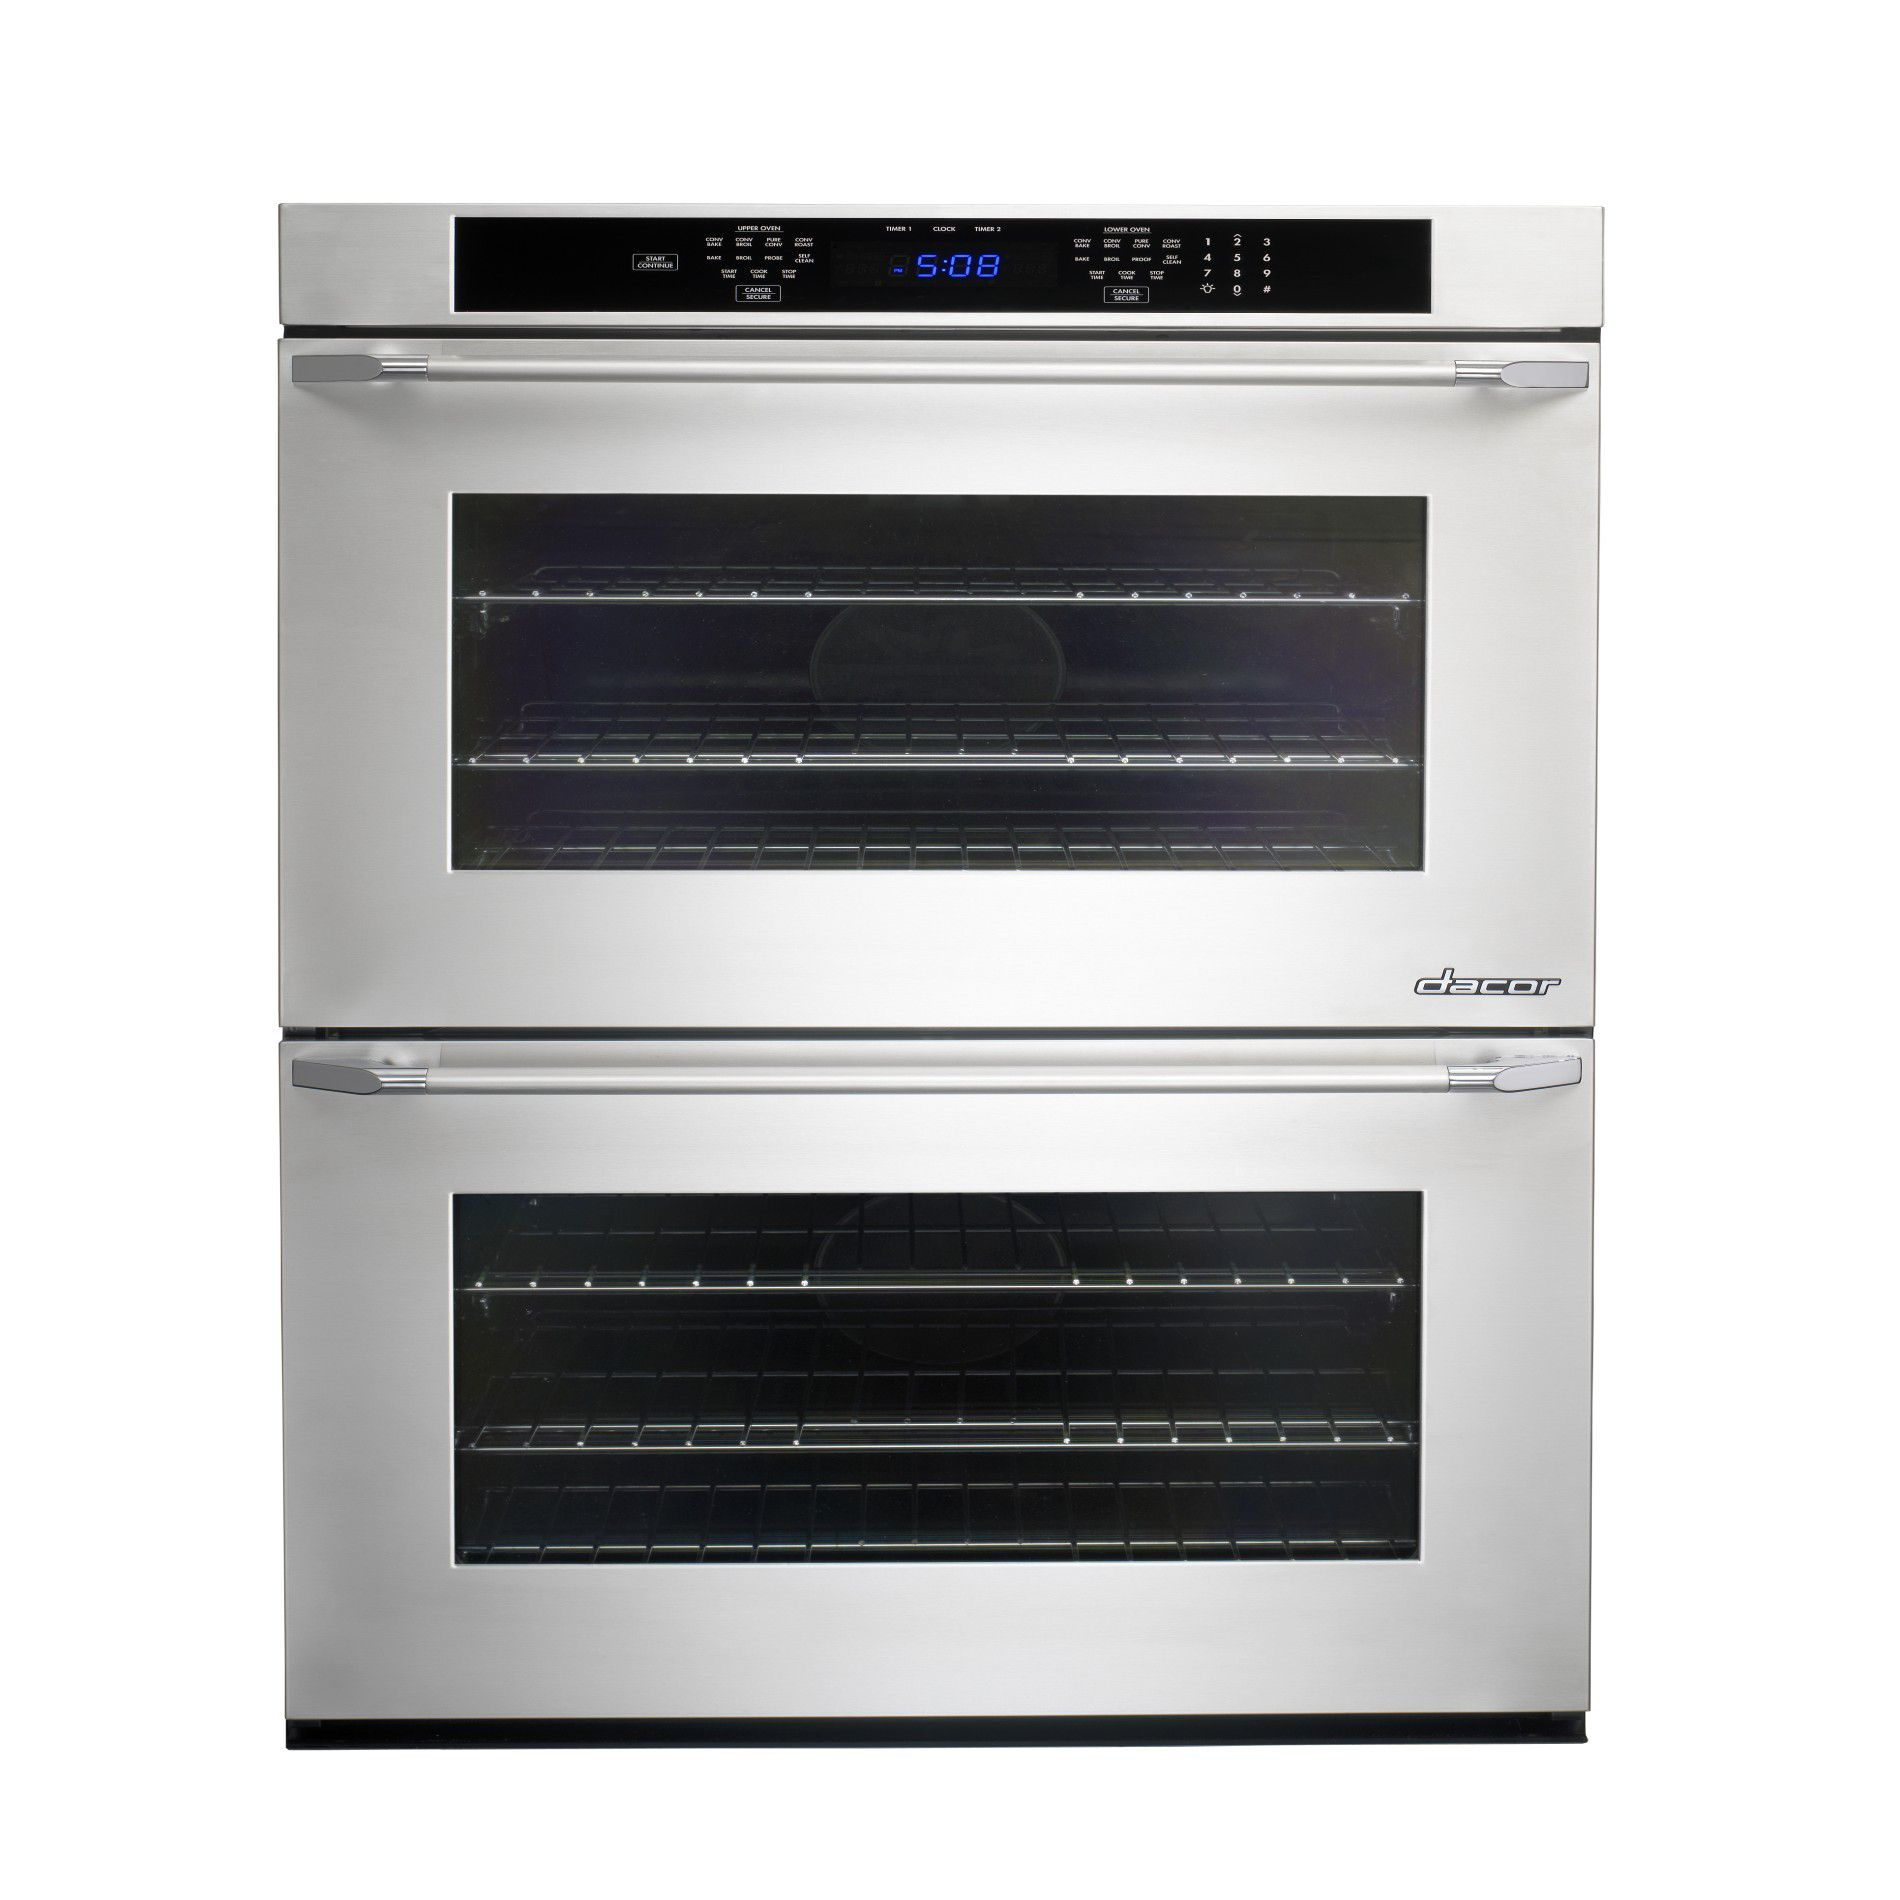 medium resolution of dacor electric double wall oven 30 in ro230s sears dacor cooktop parts diagrams dacor wall oven wiring diagram